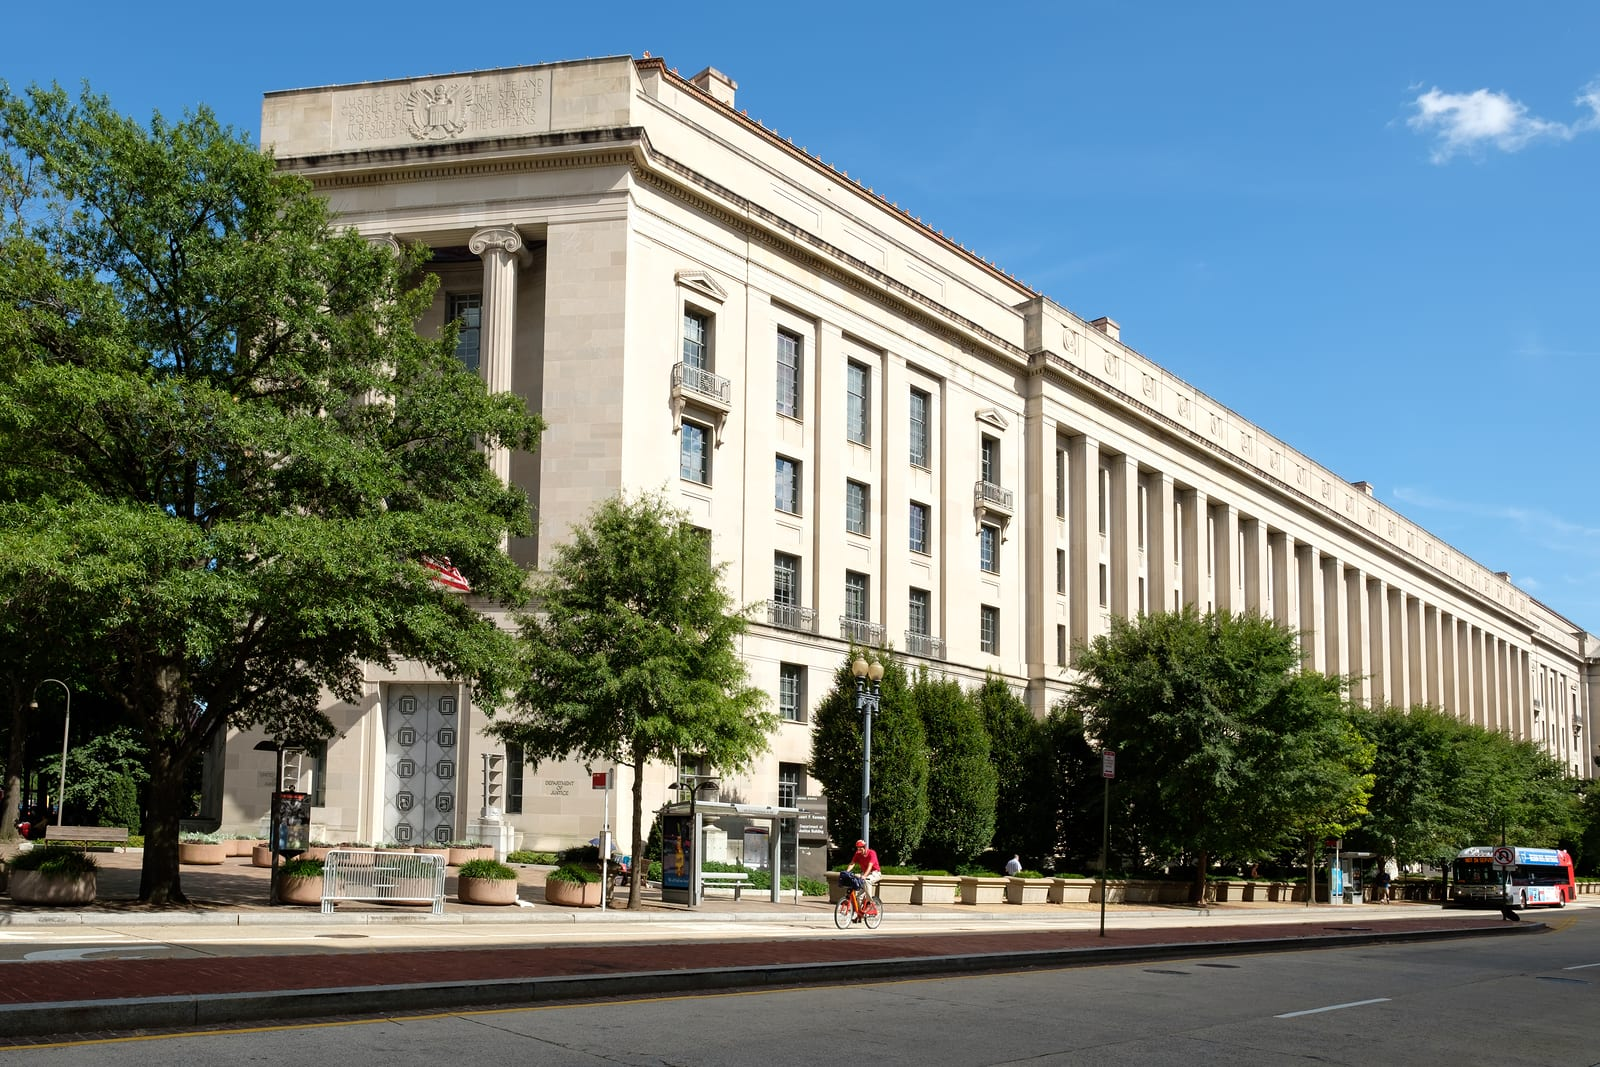 DOJ News: Universal American Mortgage Company LLC Agrees to Pay $13.2 Million to Resolve False Claims Act Allegations Related to Loan Guarantees